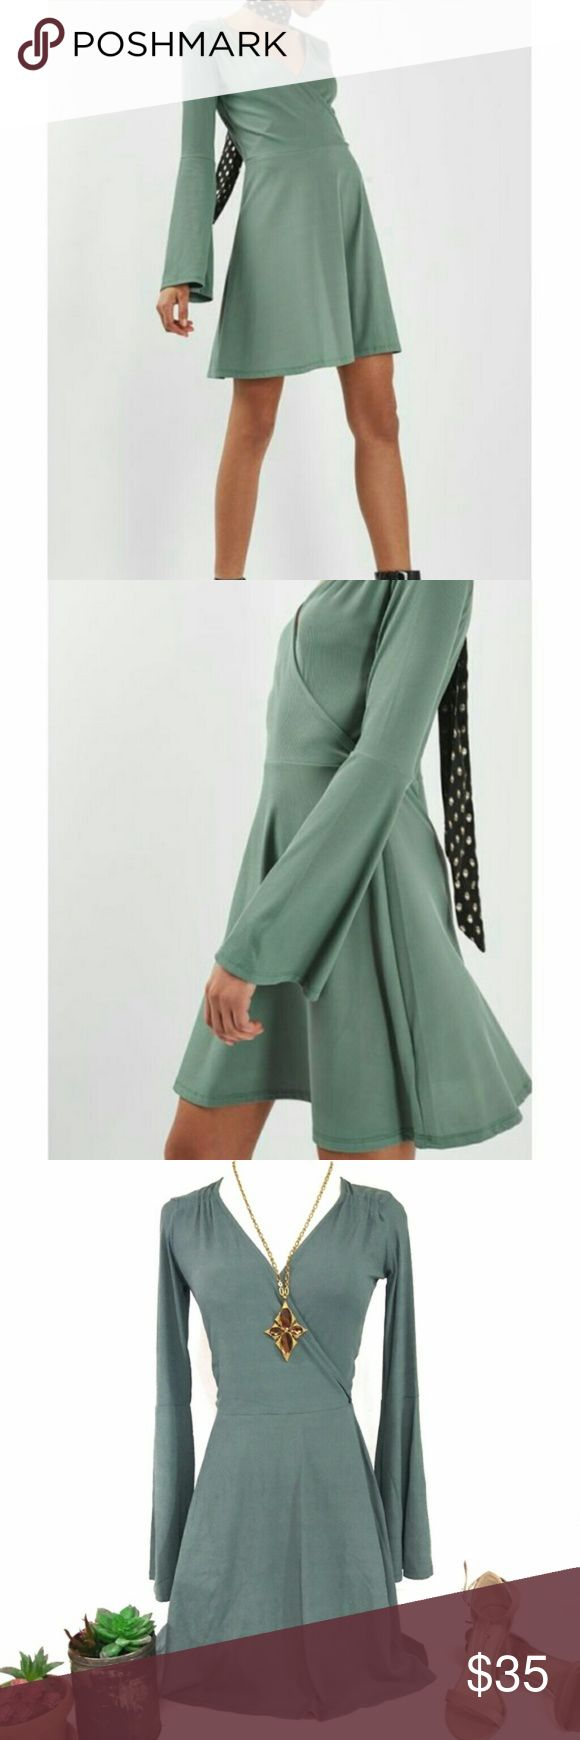 "NWT Topshop Bell Sleeve Surplice Fit Flare Dress NWT. Perfect condition! Stock image reflects true color.   Sizes US 4 & 6 (XS and Small.)   Great for Fall with knee high boots and a scarf, or heels for a night out! Adorable ribbed bell long sleeve dress from TOPSHOP in the color Duck Egg (a pretty shade of green,) with a surplice bust, fitted waist, and flared skirt. Fun and flirty!   - Surplice neck - Long bell sleeves - Shirred shoulders - Rib knit construction - Approx. 34"" & 35"" length…"